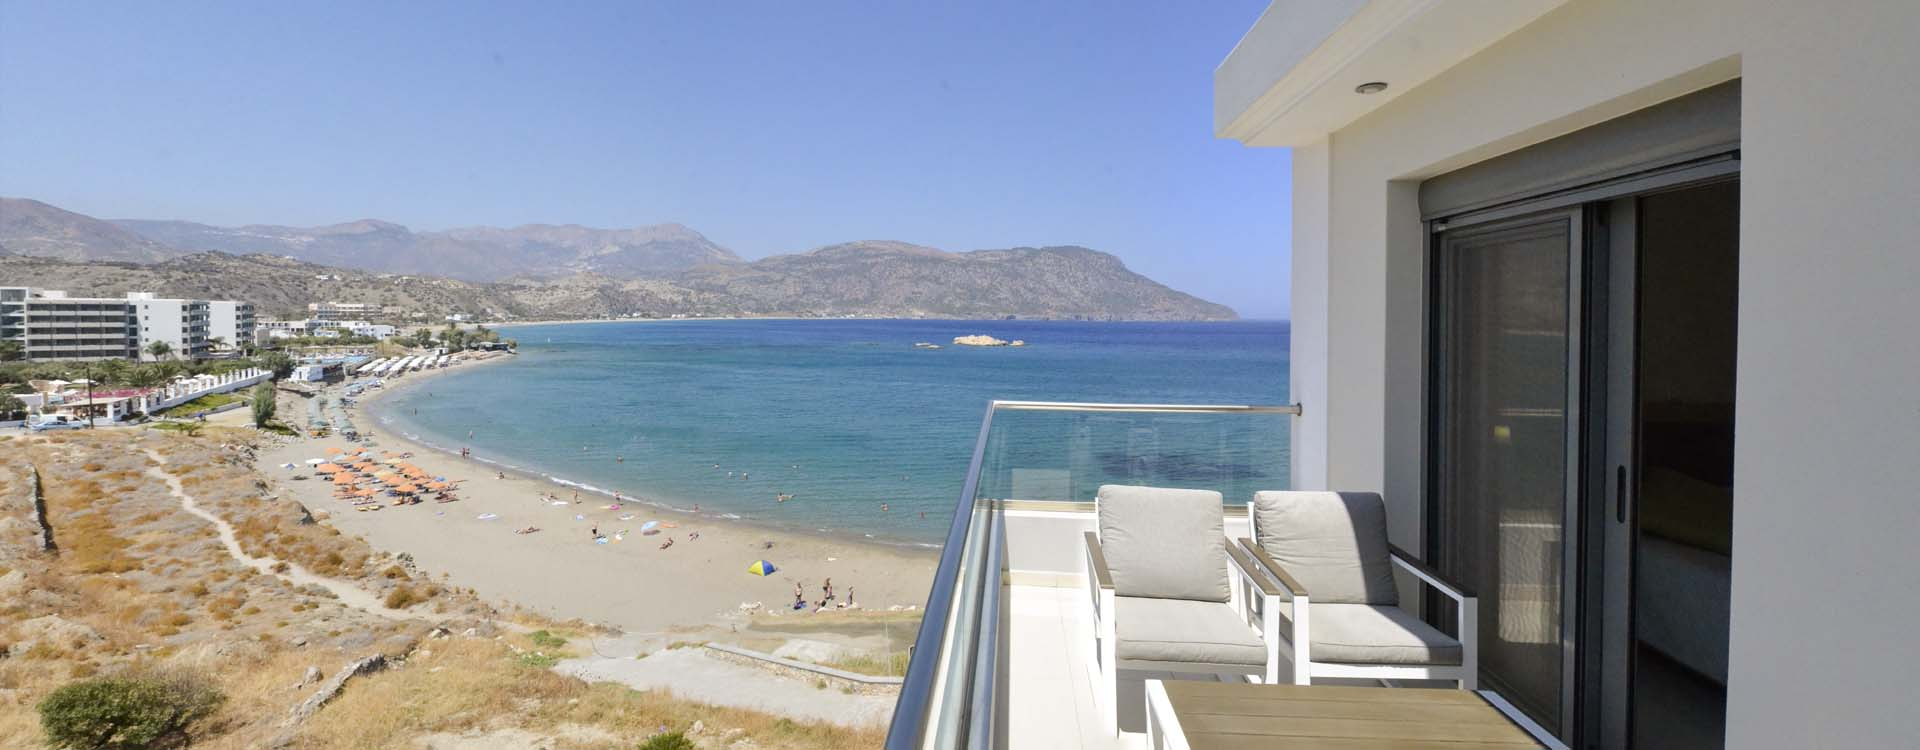 Ideal for self catering holiday on the island of Karpathos